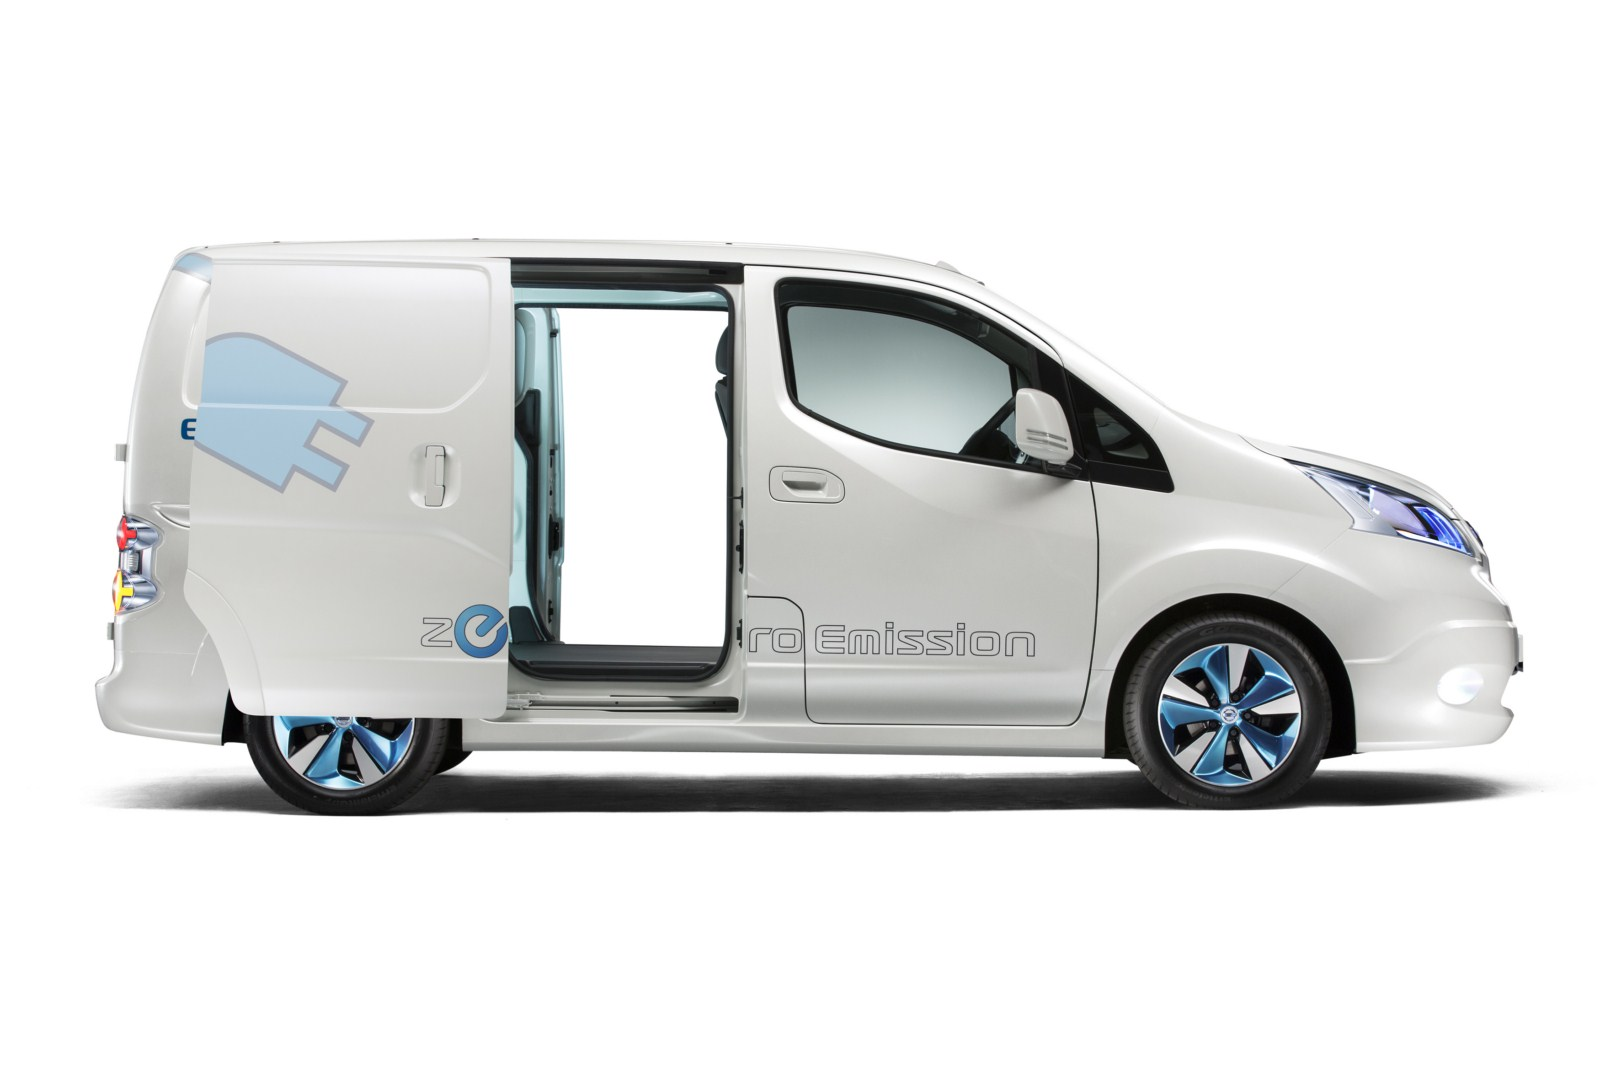 2017 Nissan e NV200 Concept photo - 1